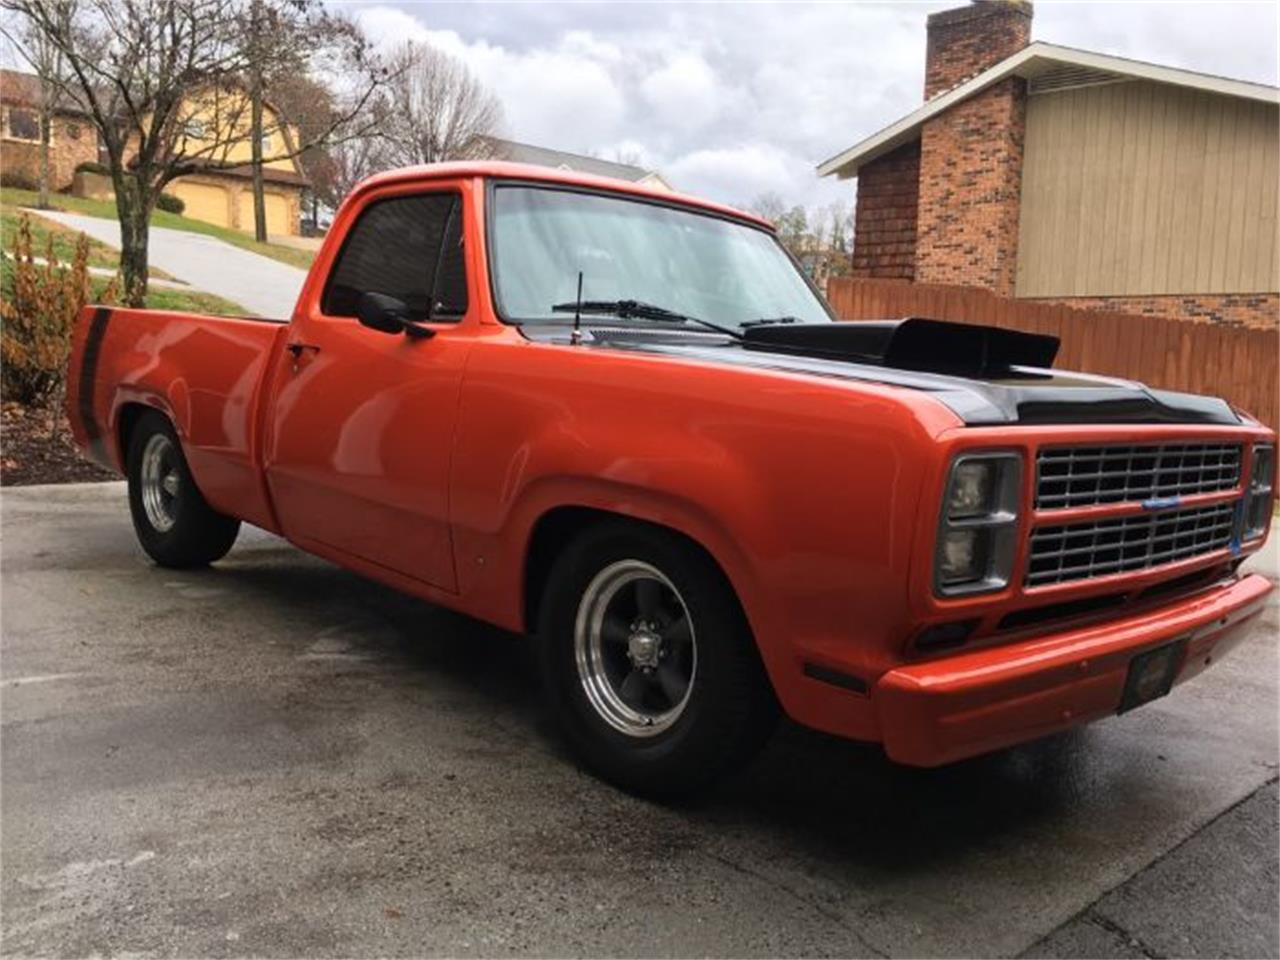 1980 Dodge Ram For Sale Cc 1122990 Pickup Truck Large Picture Of 80 O2i6